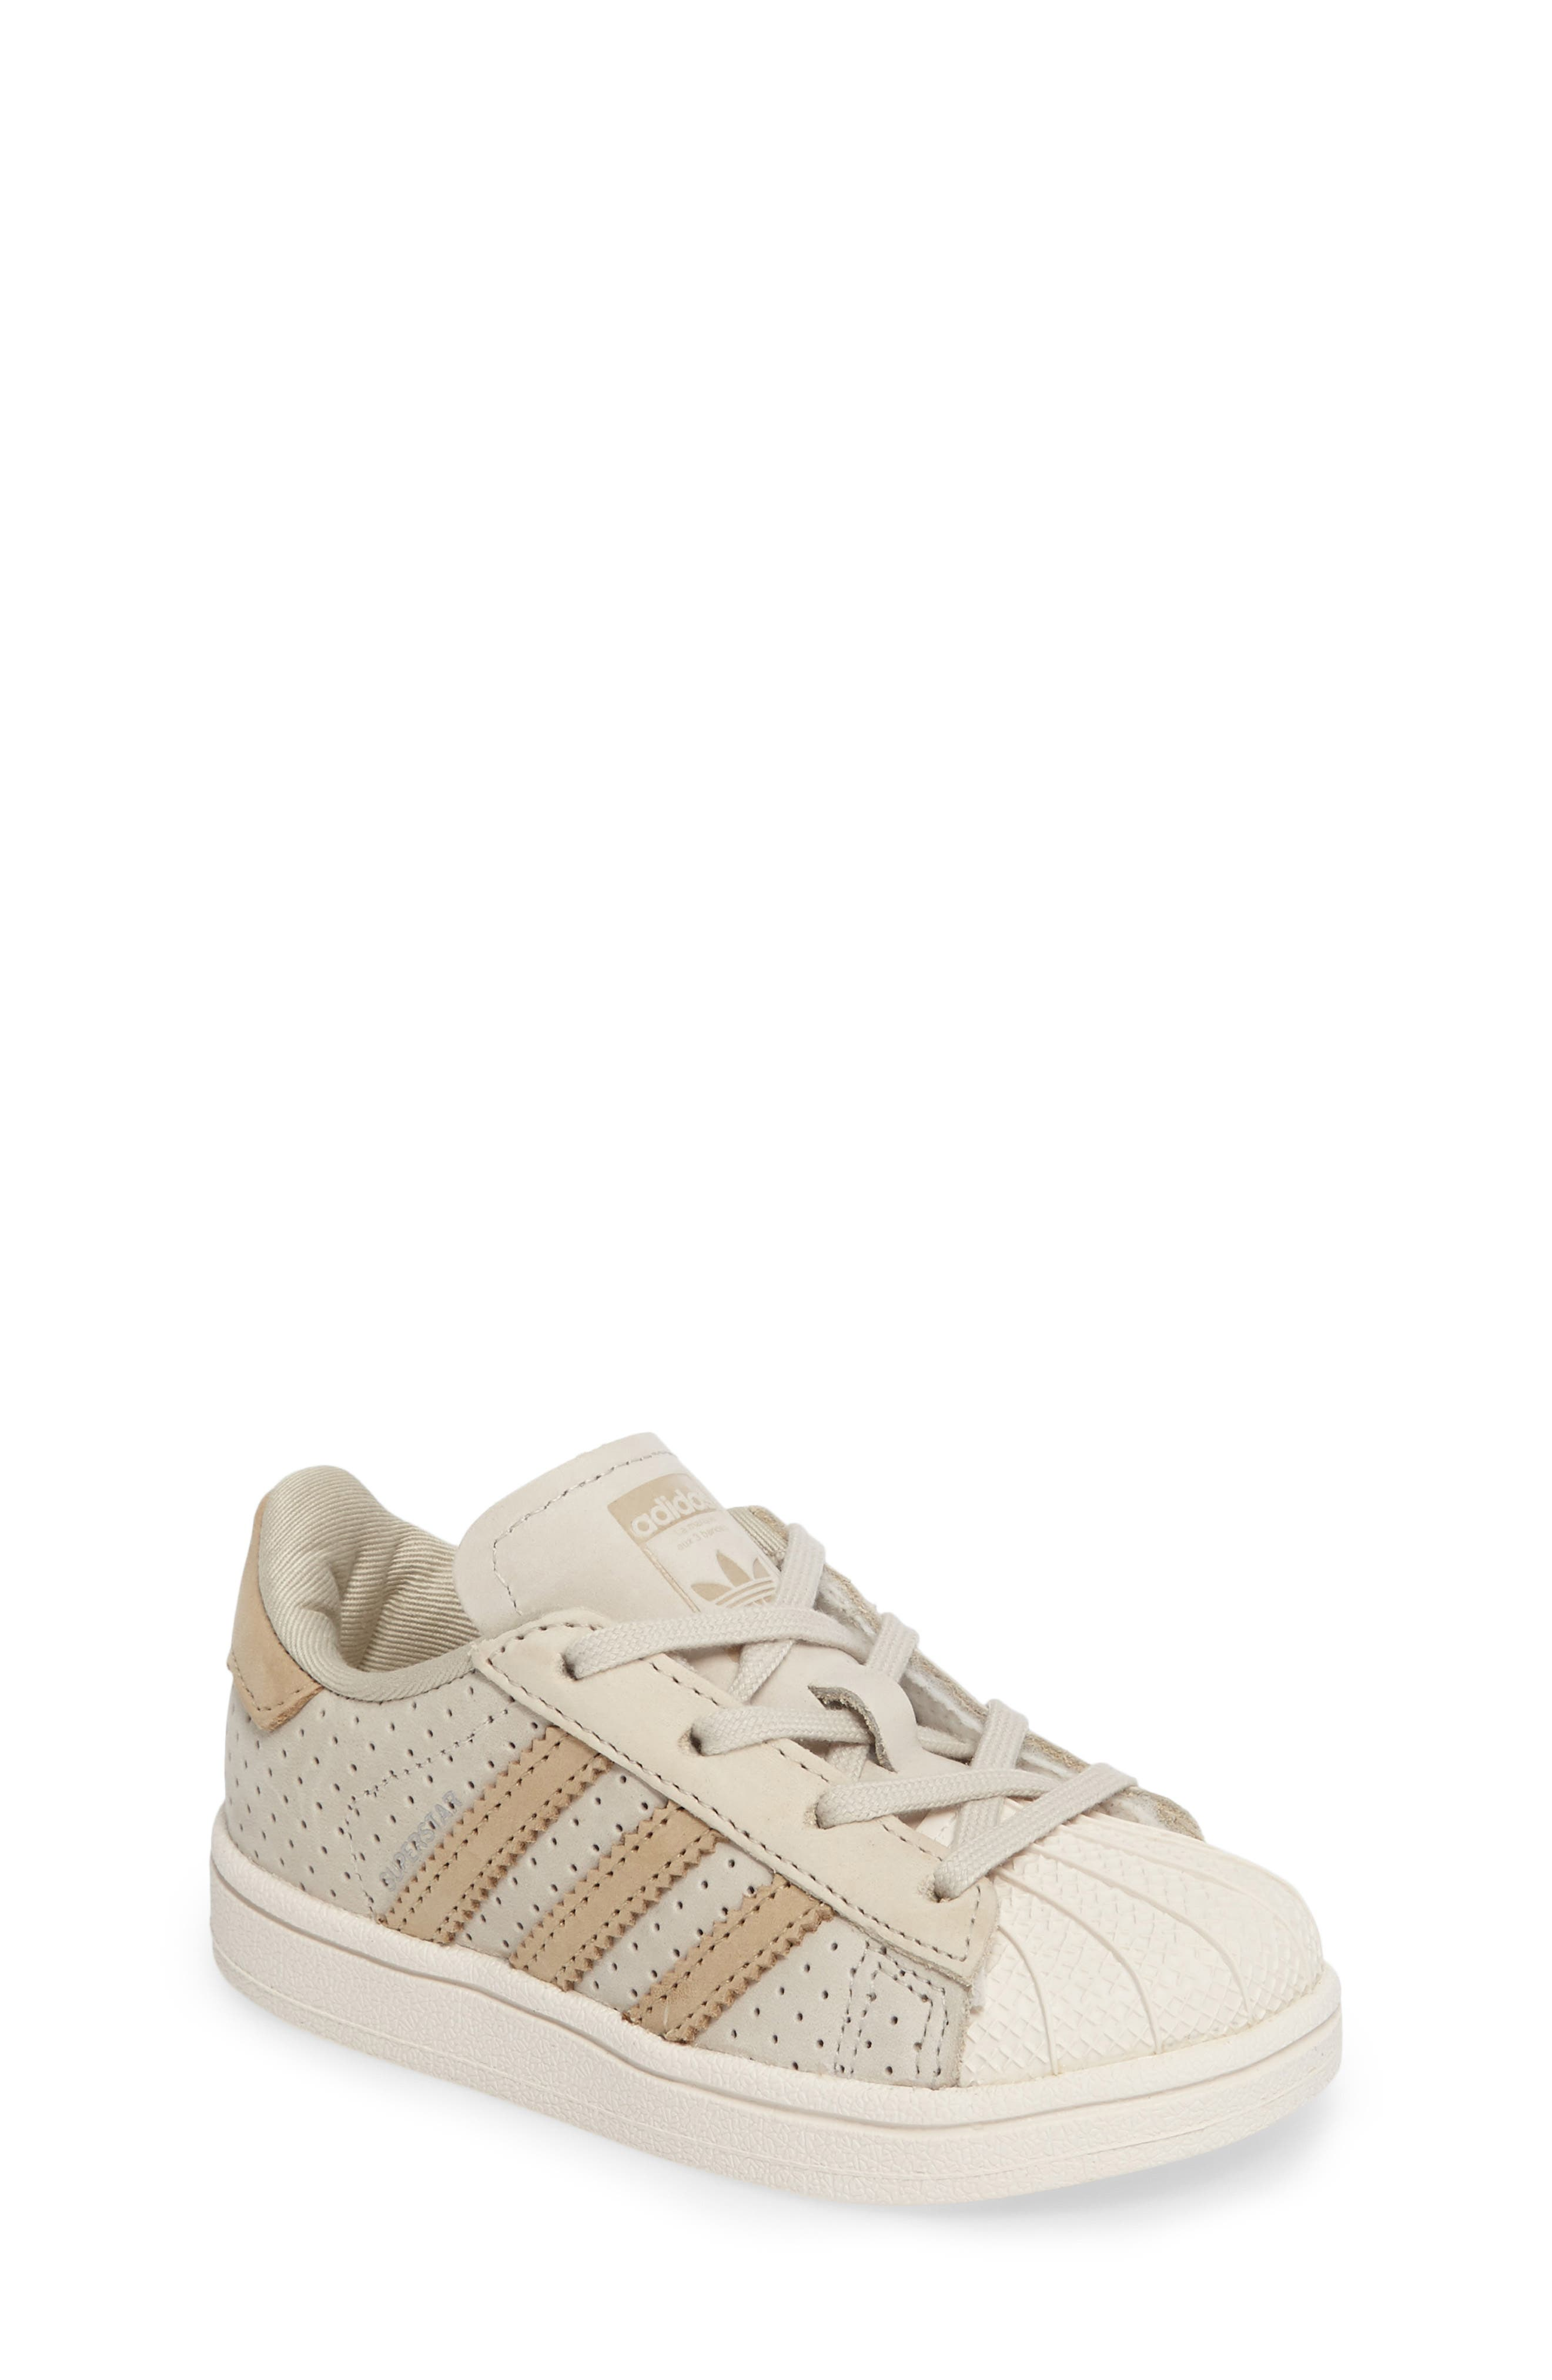 Stan Smith Fashion I Perforated Sneaker,                         Main,                         color, 200